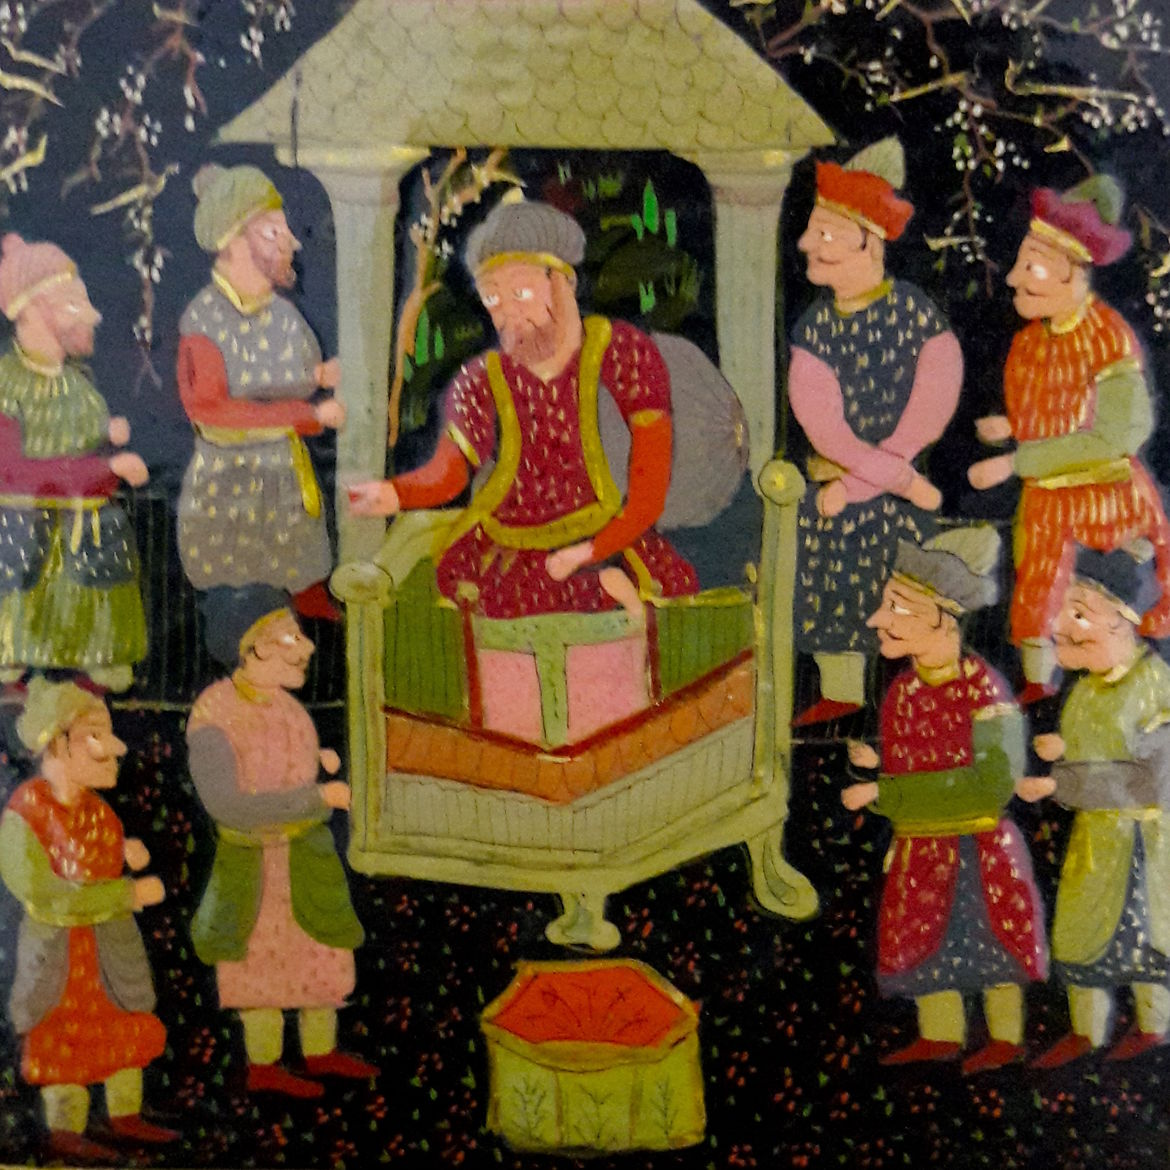 Cover Photo: Detail of papier-mâché box. Photo by Sibtain Ali, courtesy of author